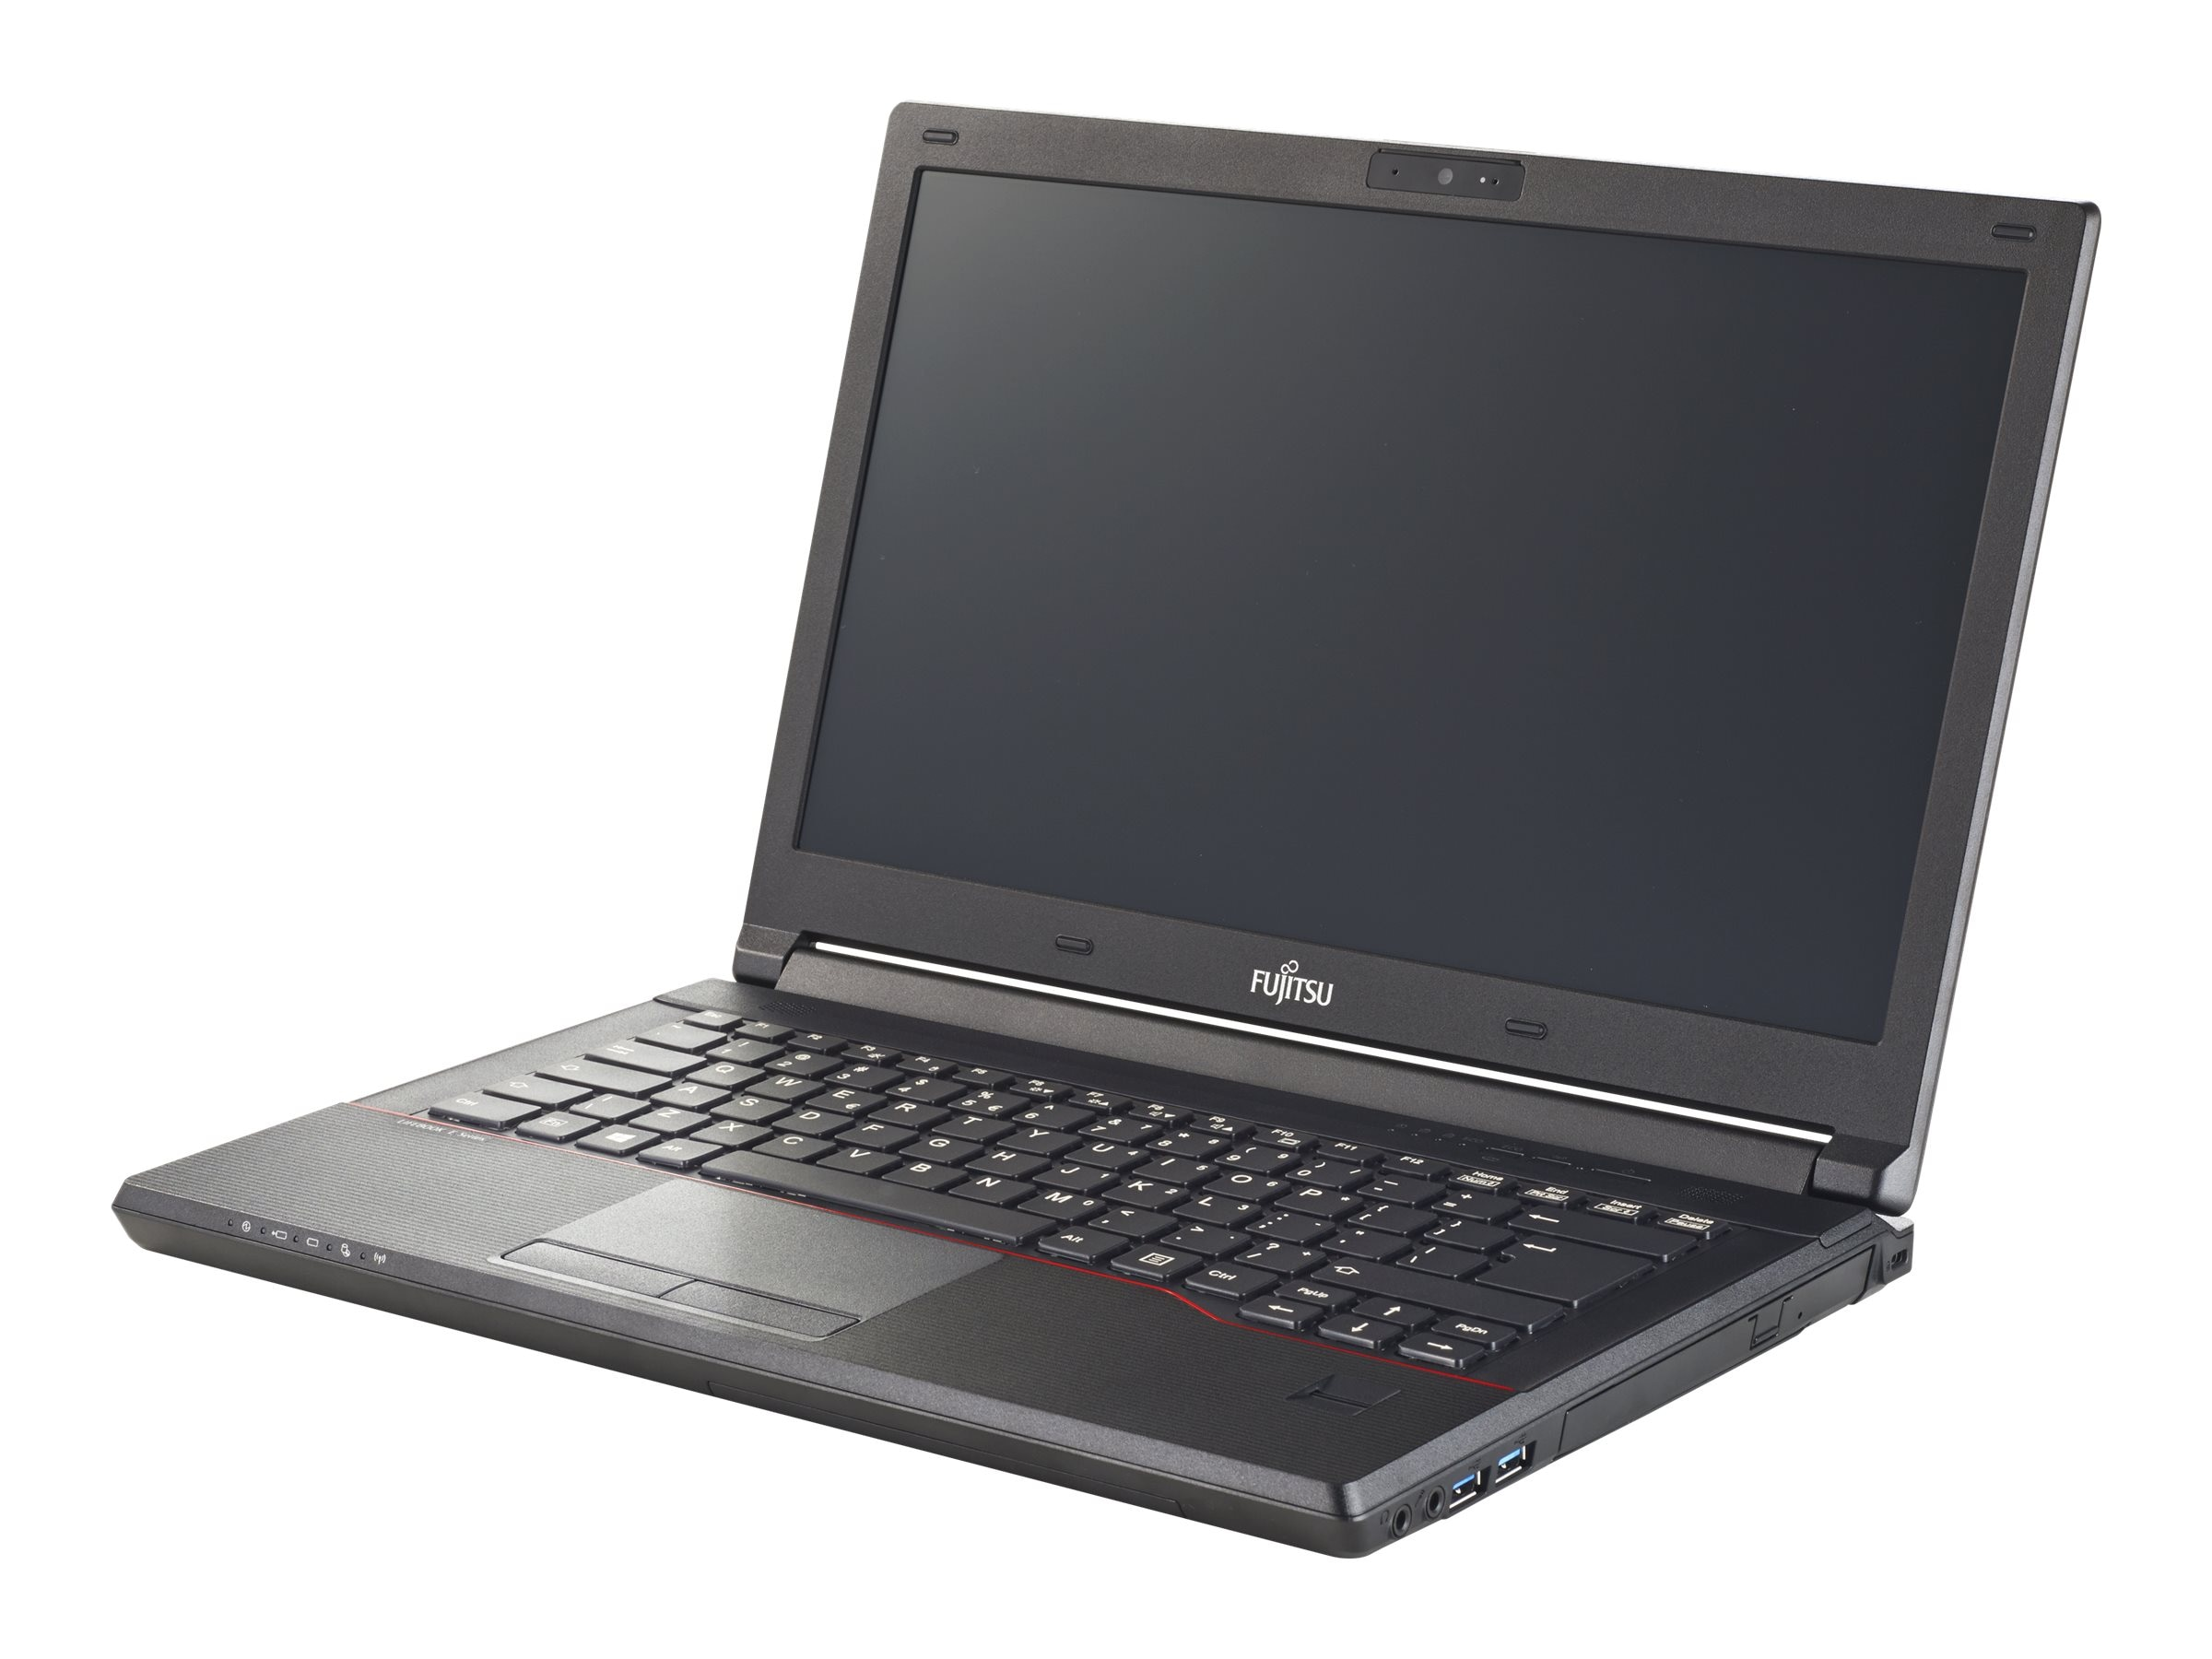 Fujitsu LifeBook E546 2.3GHz Core i5 14in display, SPFC-E546-001, 31895100, Notebooks